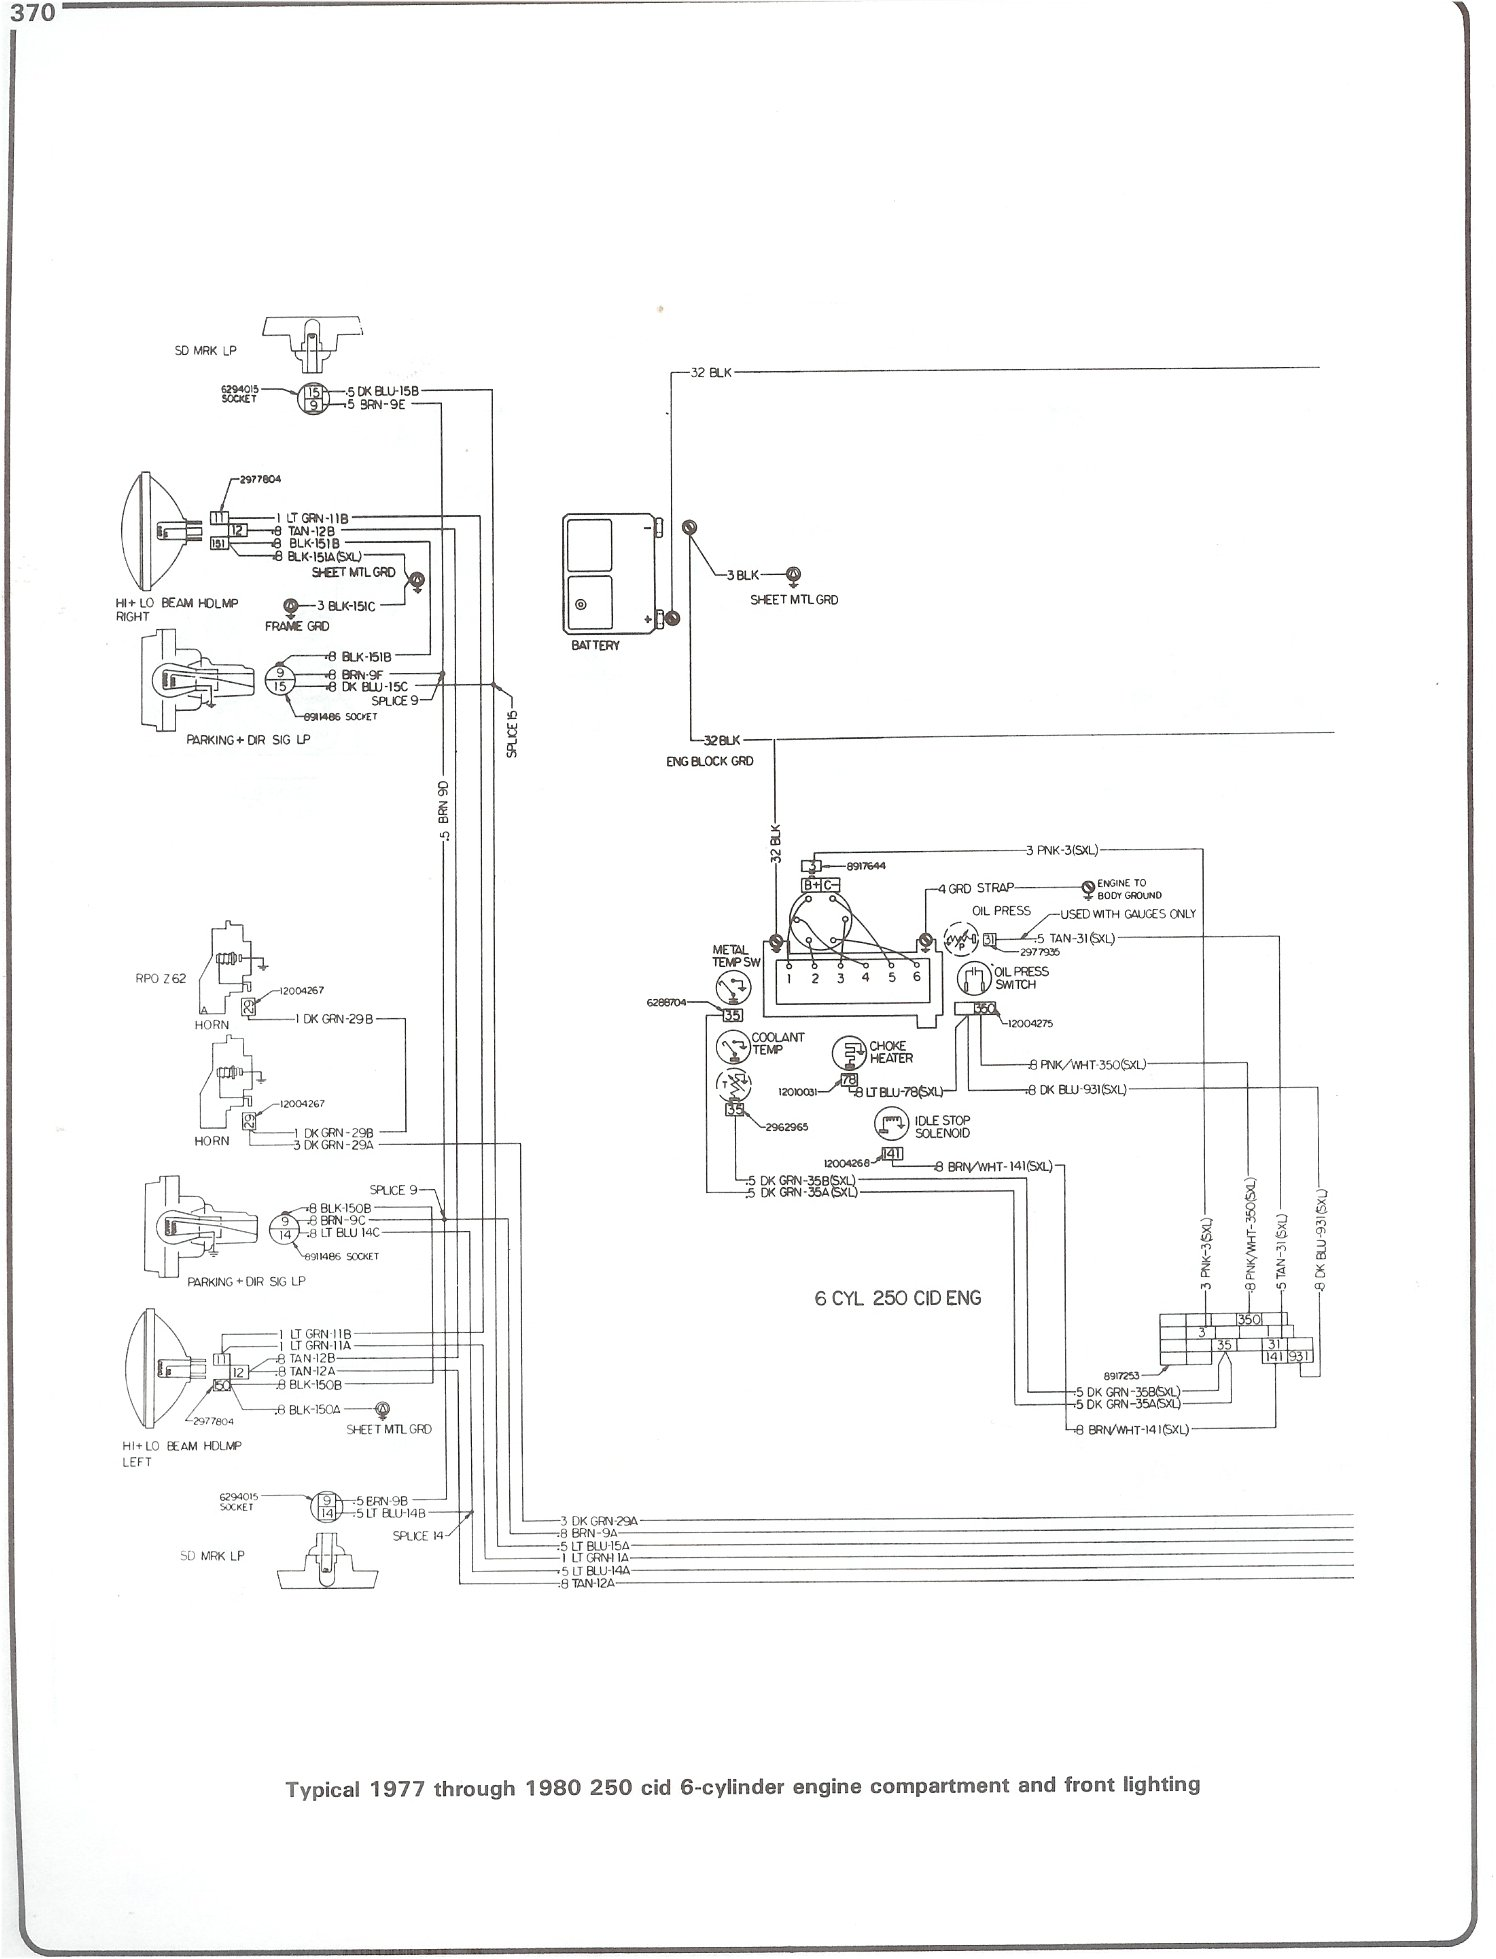 1992 S10 Wiring Diagram R Motor Find Wiring Diagram \u2022 Wiring Diagrams  1997 S10 4x4 1991 Chevy S 10 Wiring Diagram